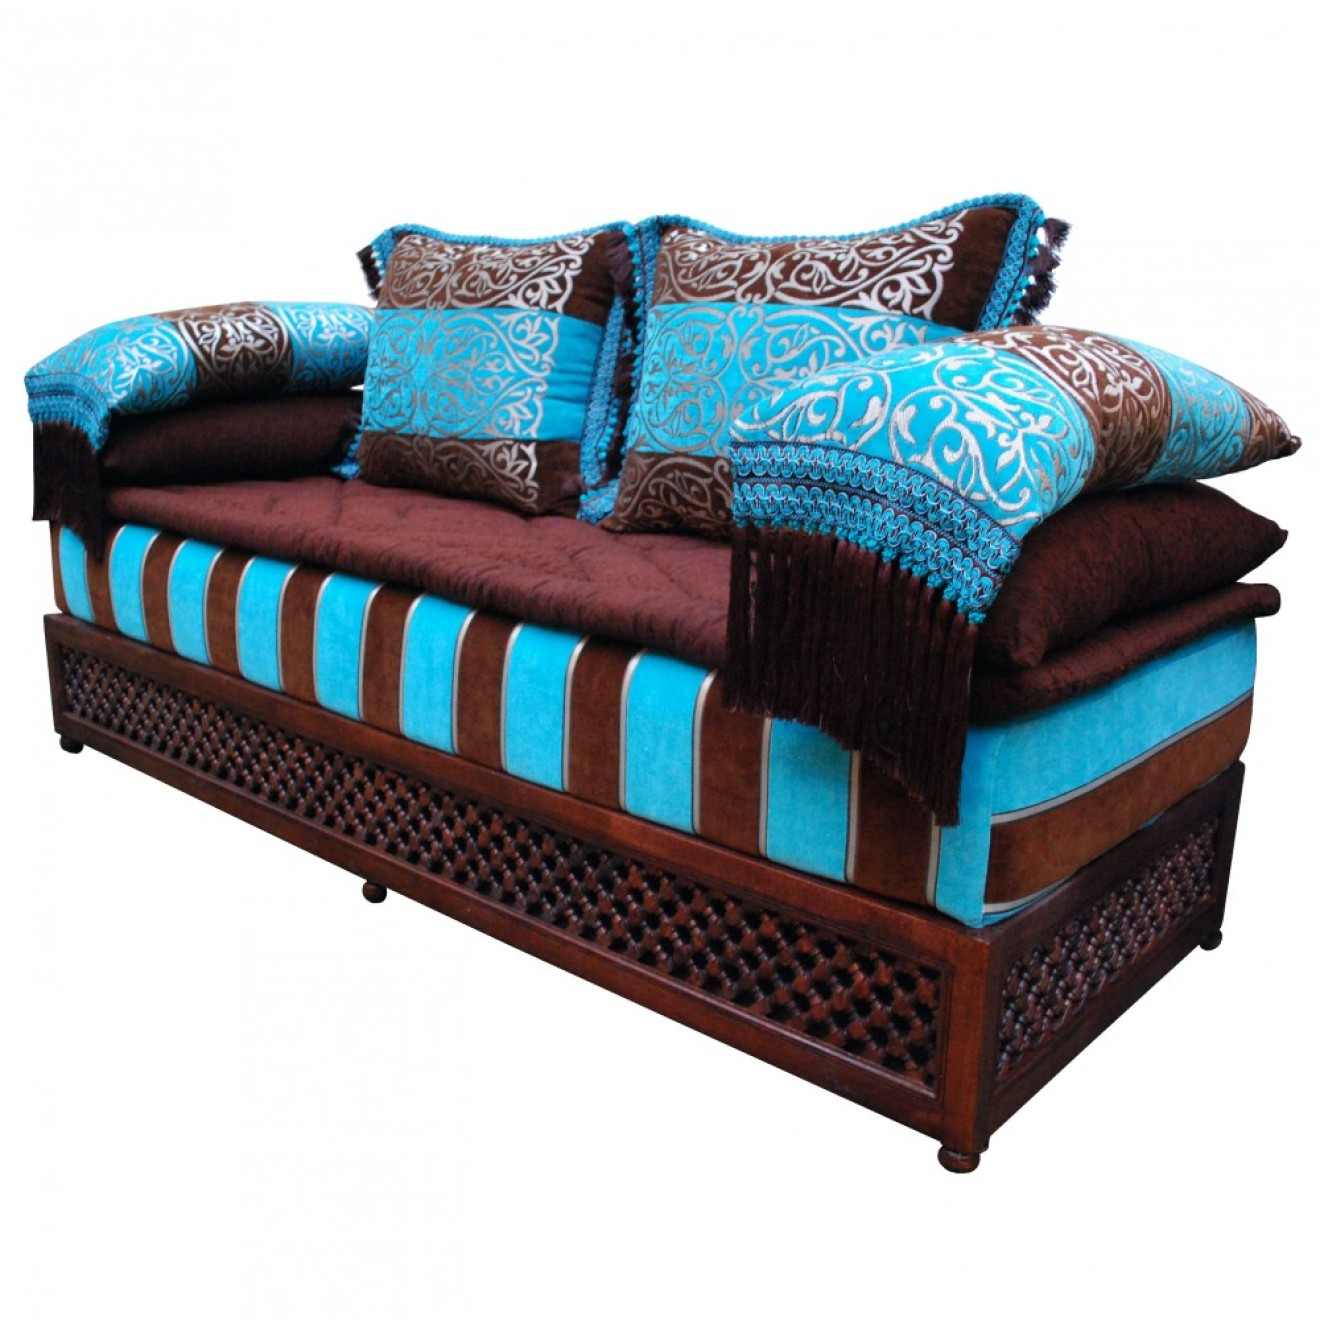 orientalische couch t rquasia. Black Bedroom Furniture Sets. Home Design Ideas